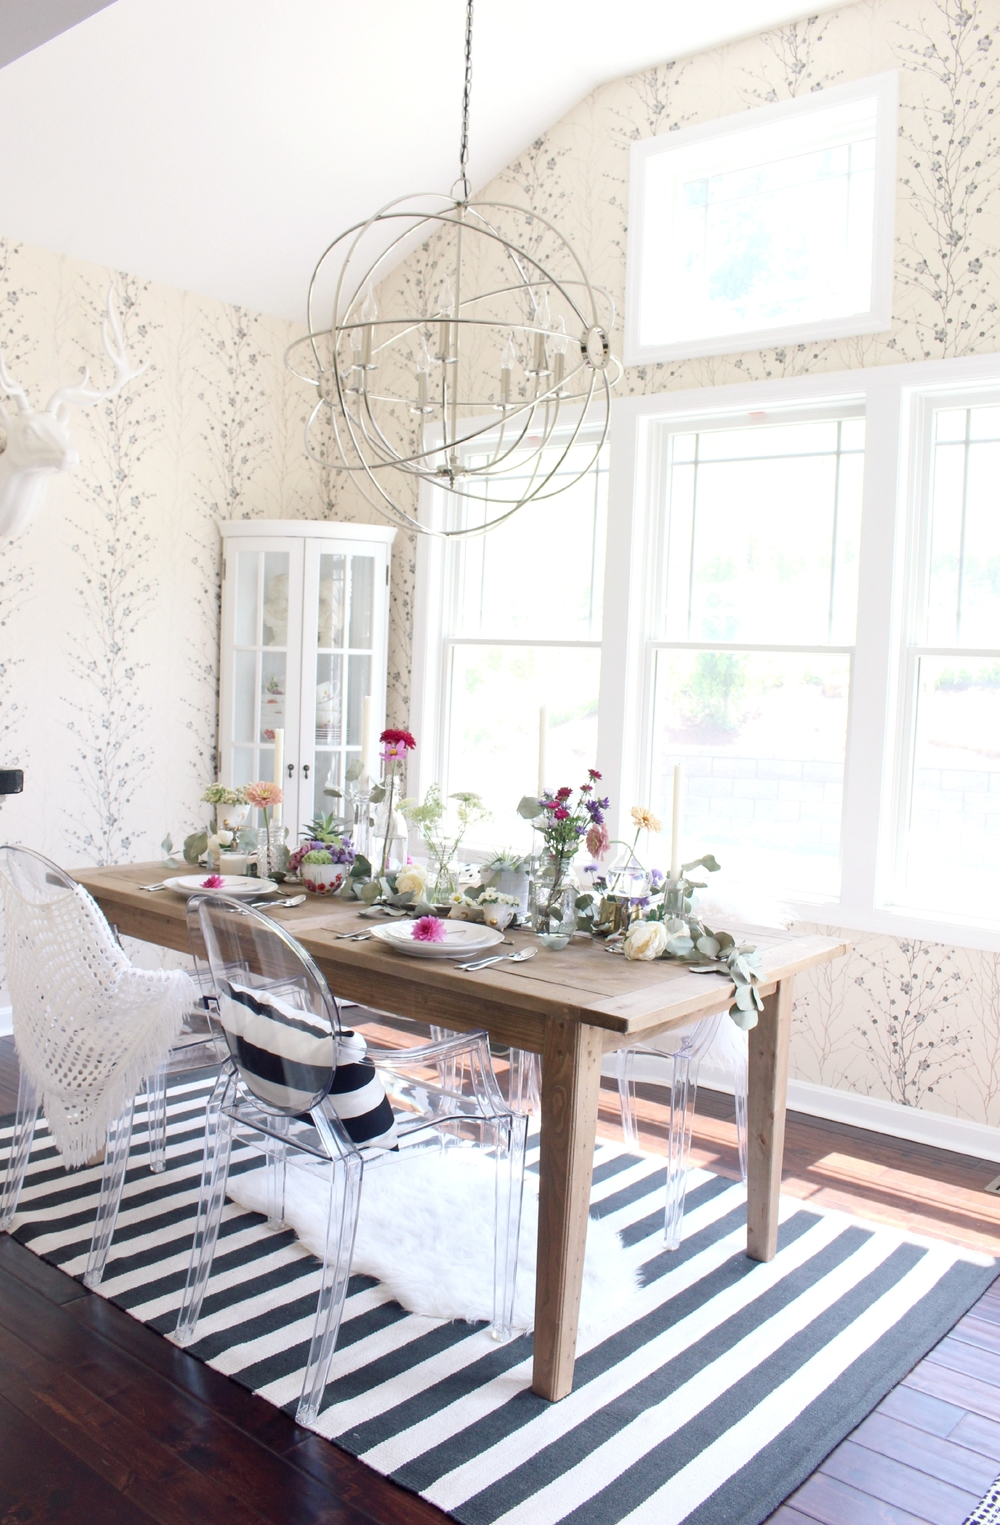 Chic Boho Dining Room from Zoë with Love